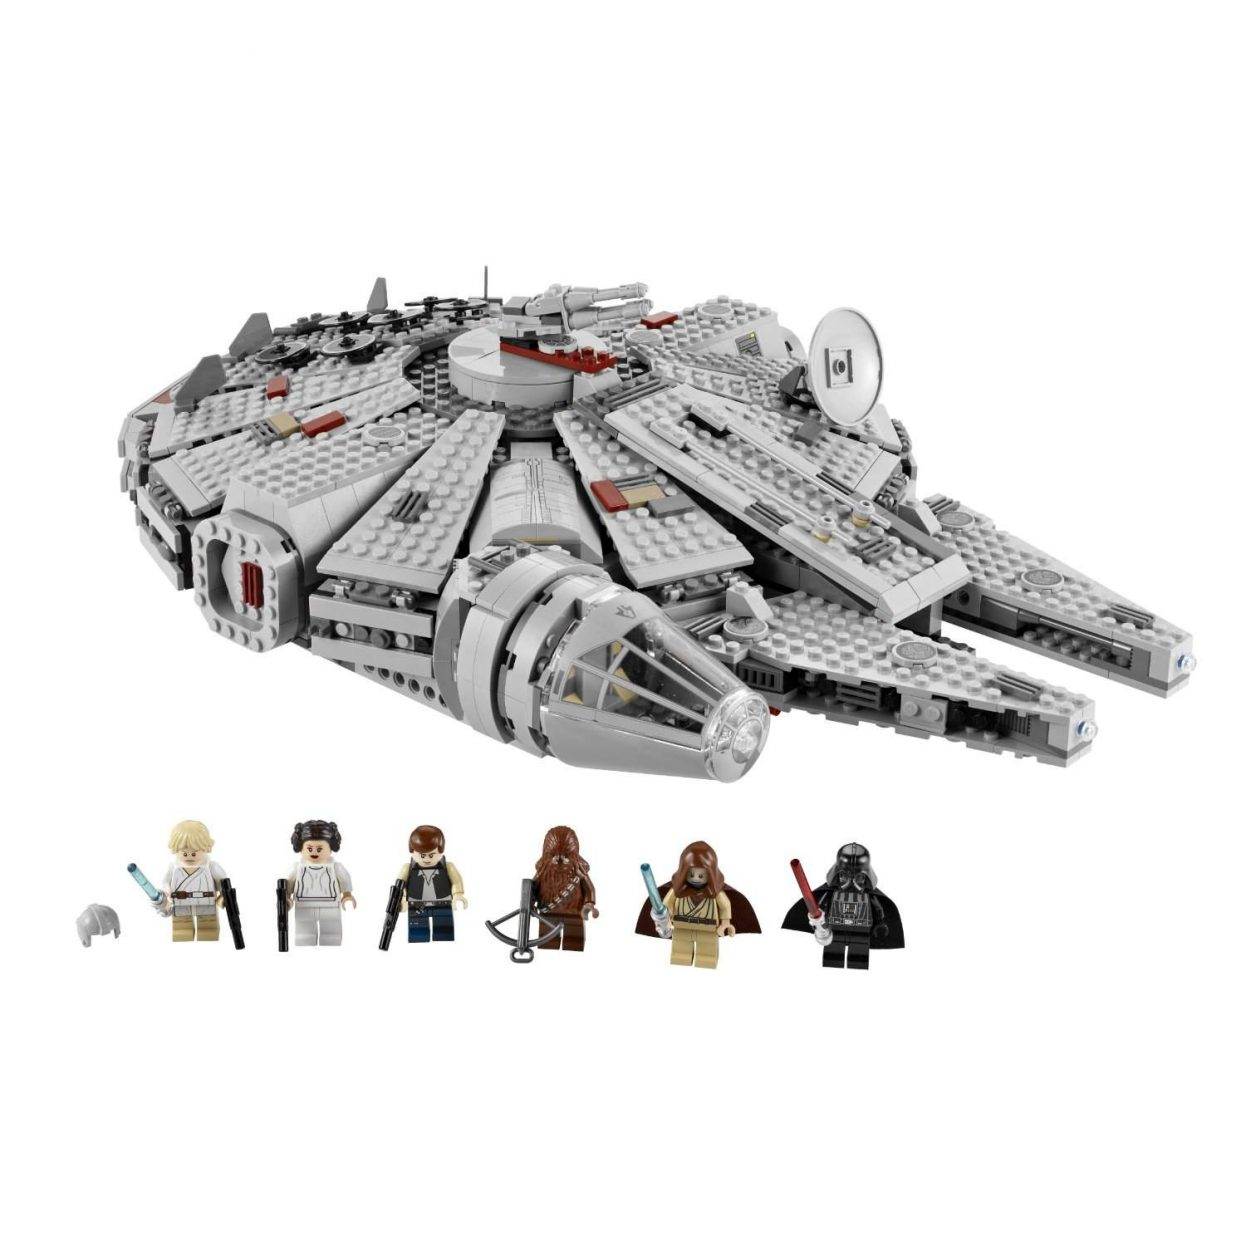 My grandkids do love the Legos Star Wars sets - along with the Atlantis - Prince of Persia - and on and on and on